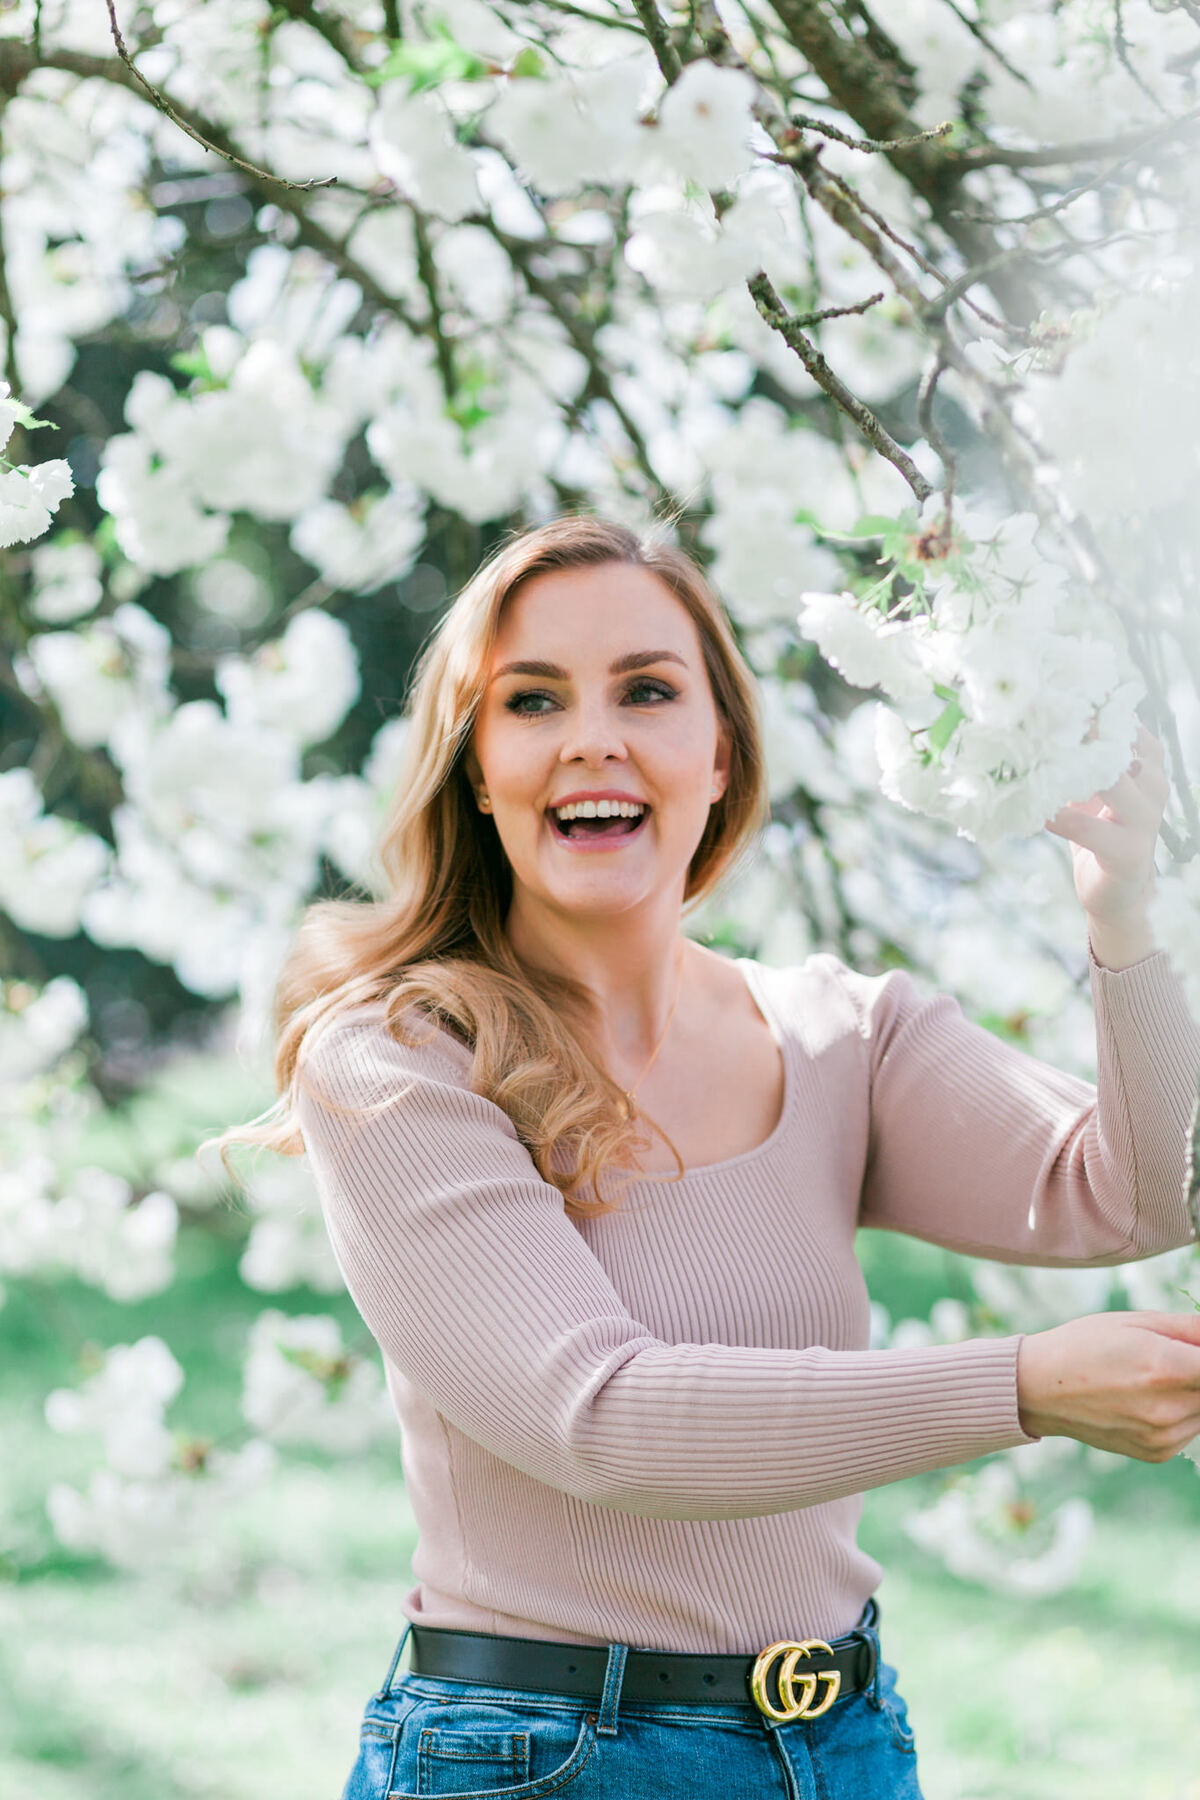 Branding headshot photo by Emma Jackson Photography of a woman in a neutral top standing amongst white blossom laughing